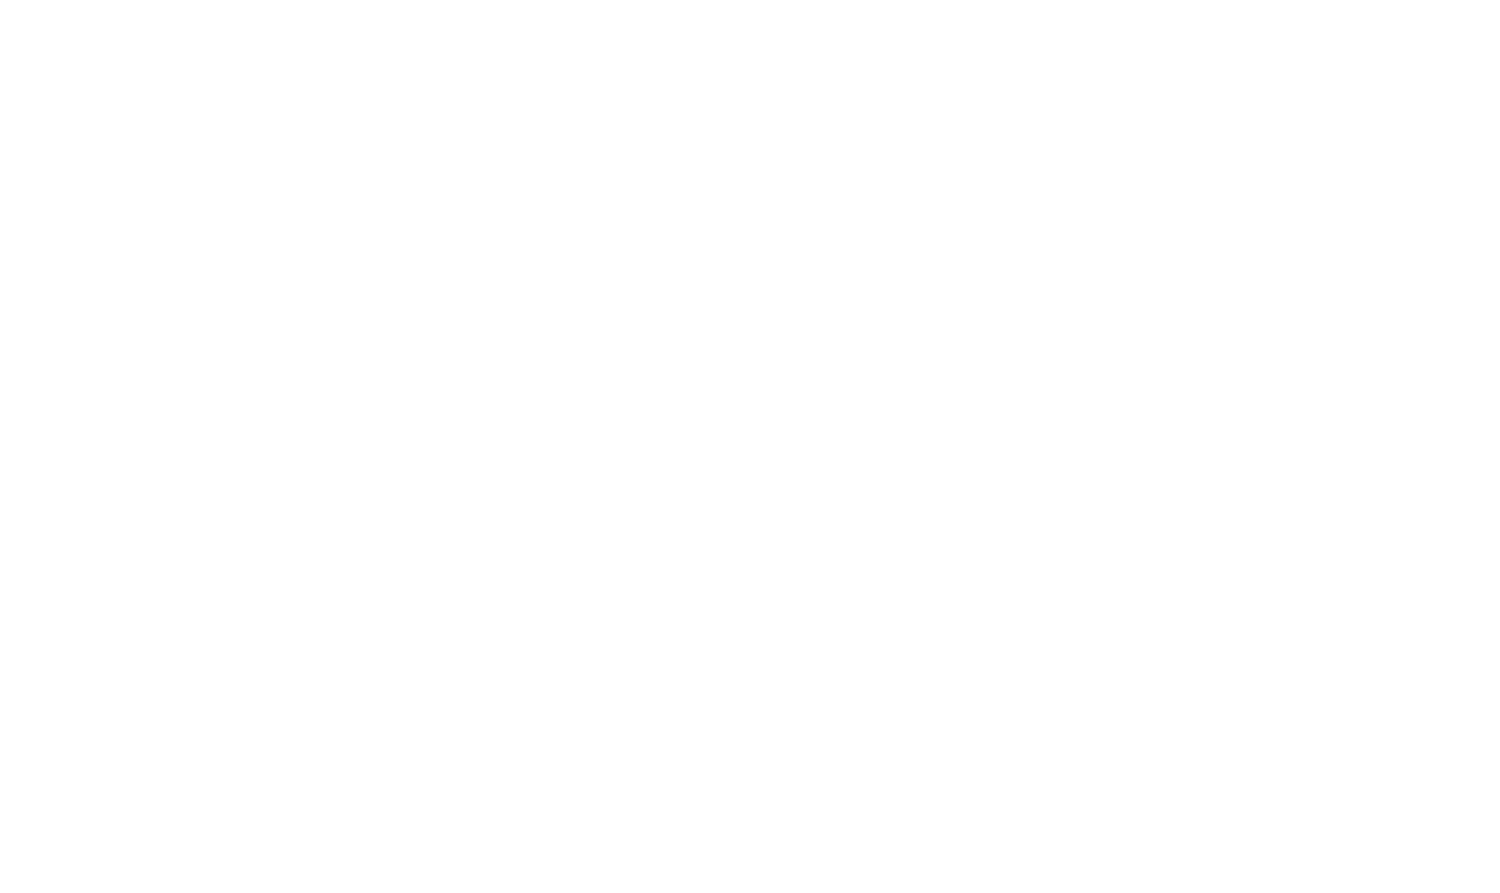 NOISE — we blow sh*t up 🚀